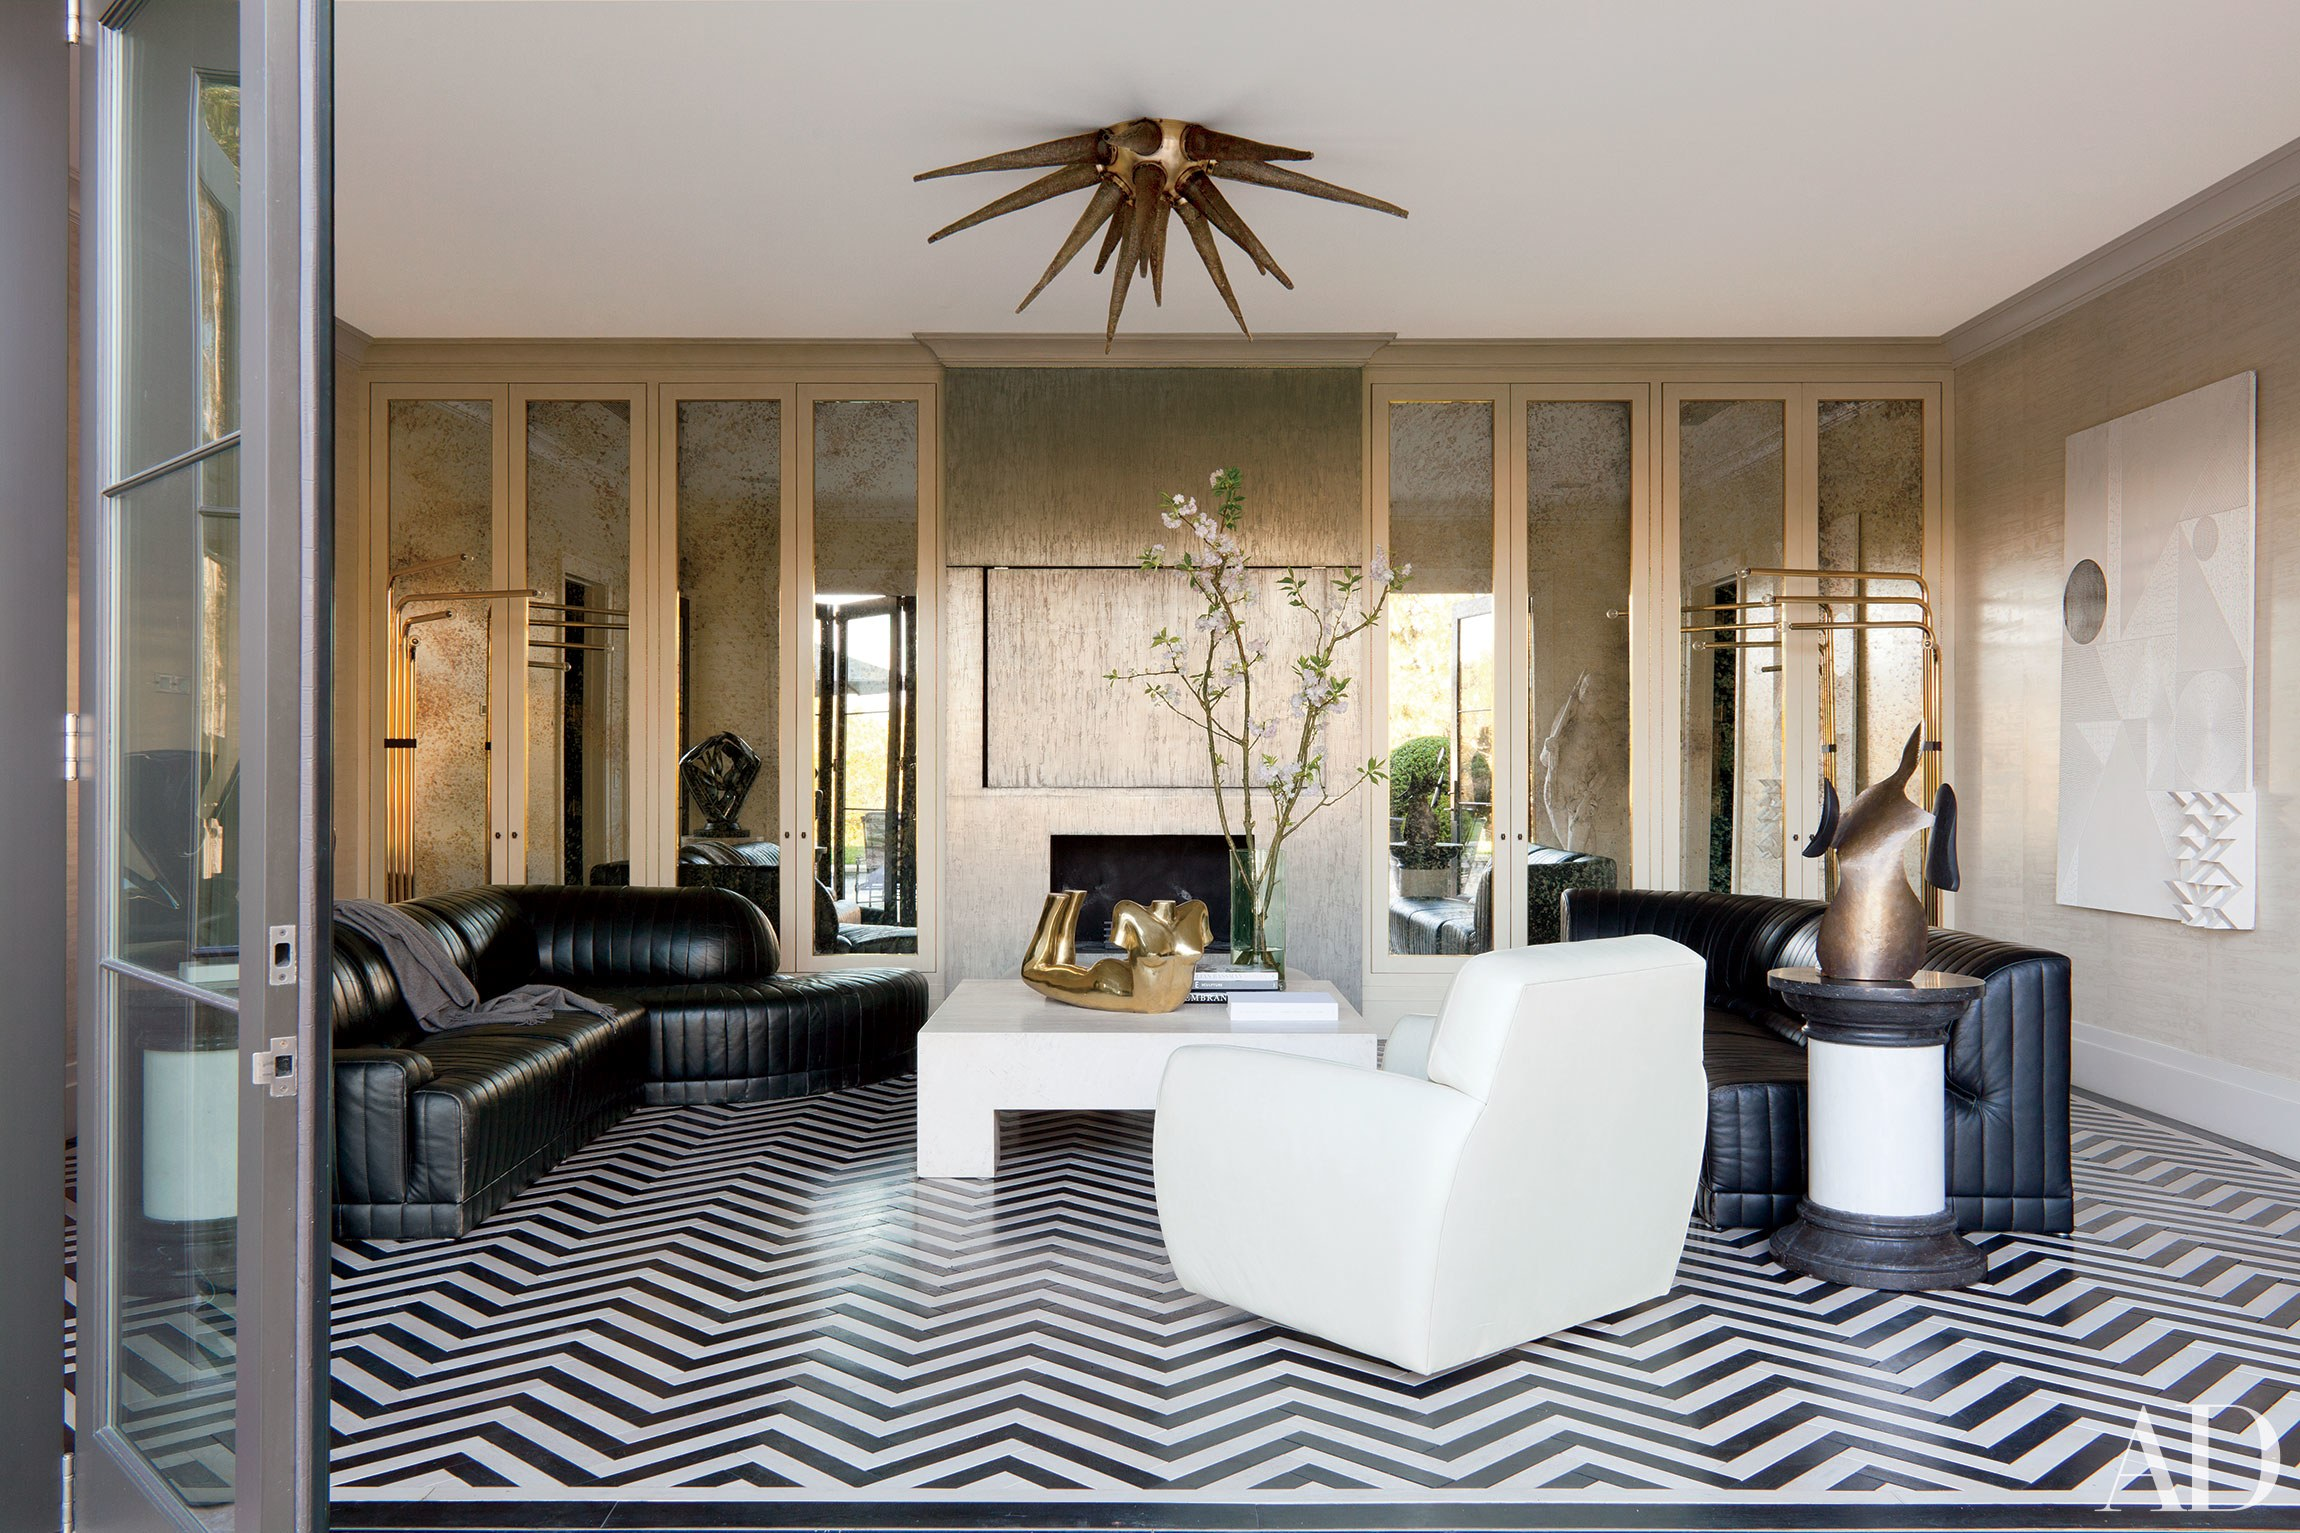 Wearstler selected a black and white Art Deco marble floor in this pool pavilion to offset the clean looking furniture and wall treatment.  Image courtesy Roger Davies.